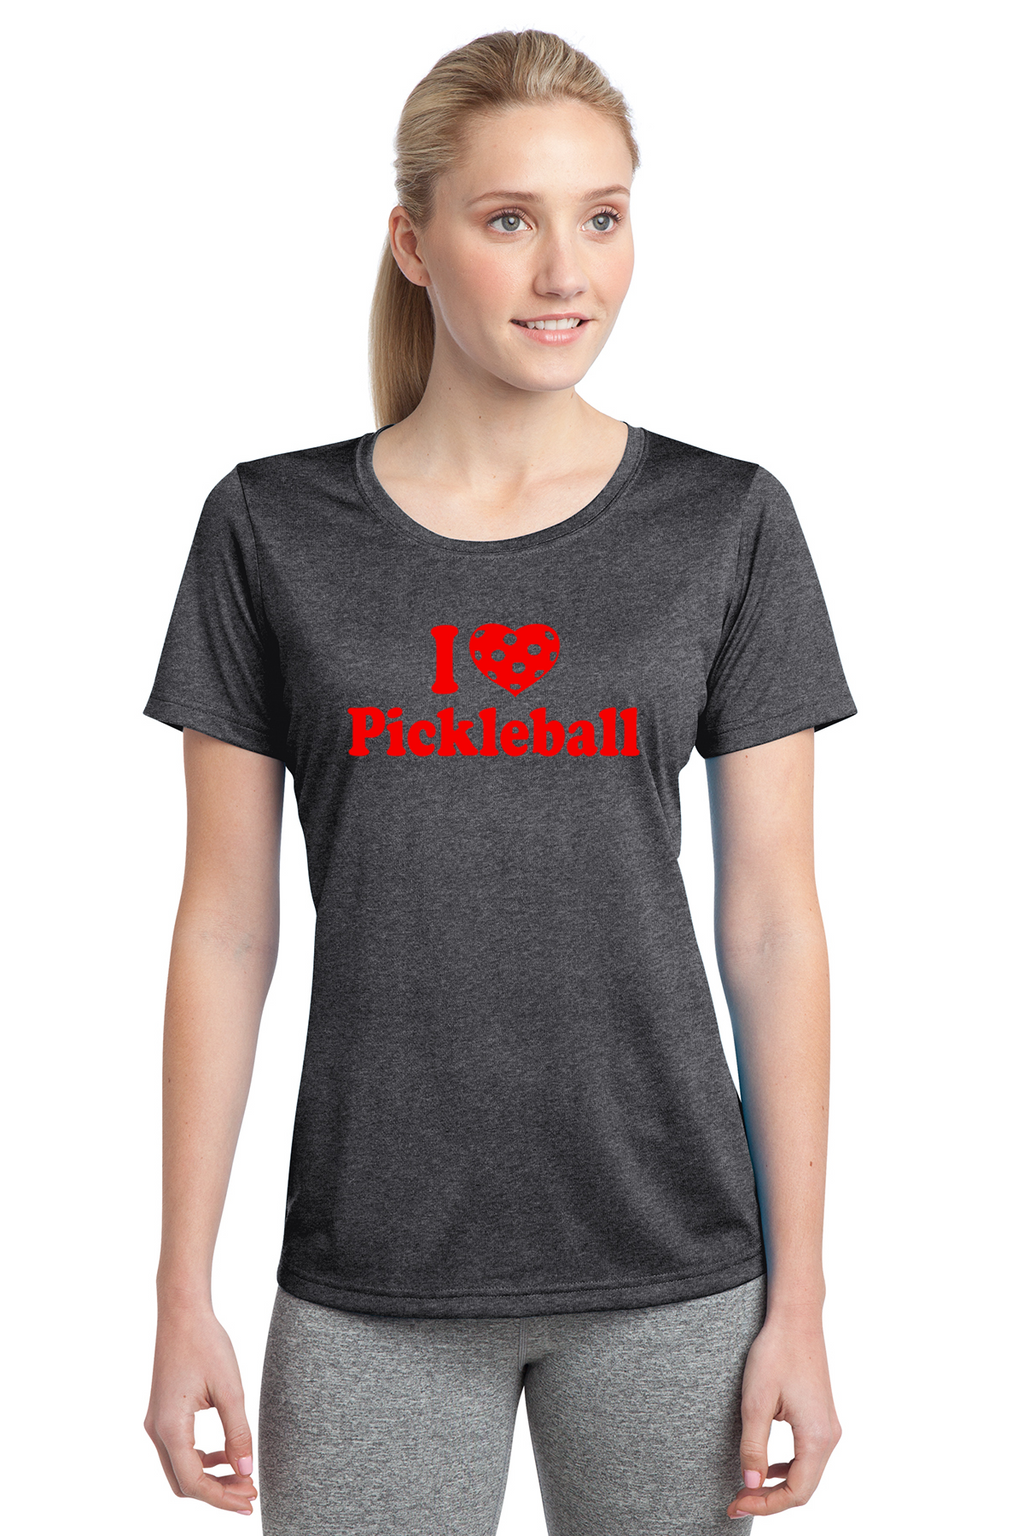 Ladies Heathered Short Sleeve Performance Scoop Neck Tee 'I Love Pickleball'